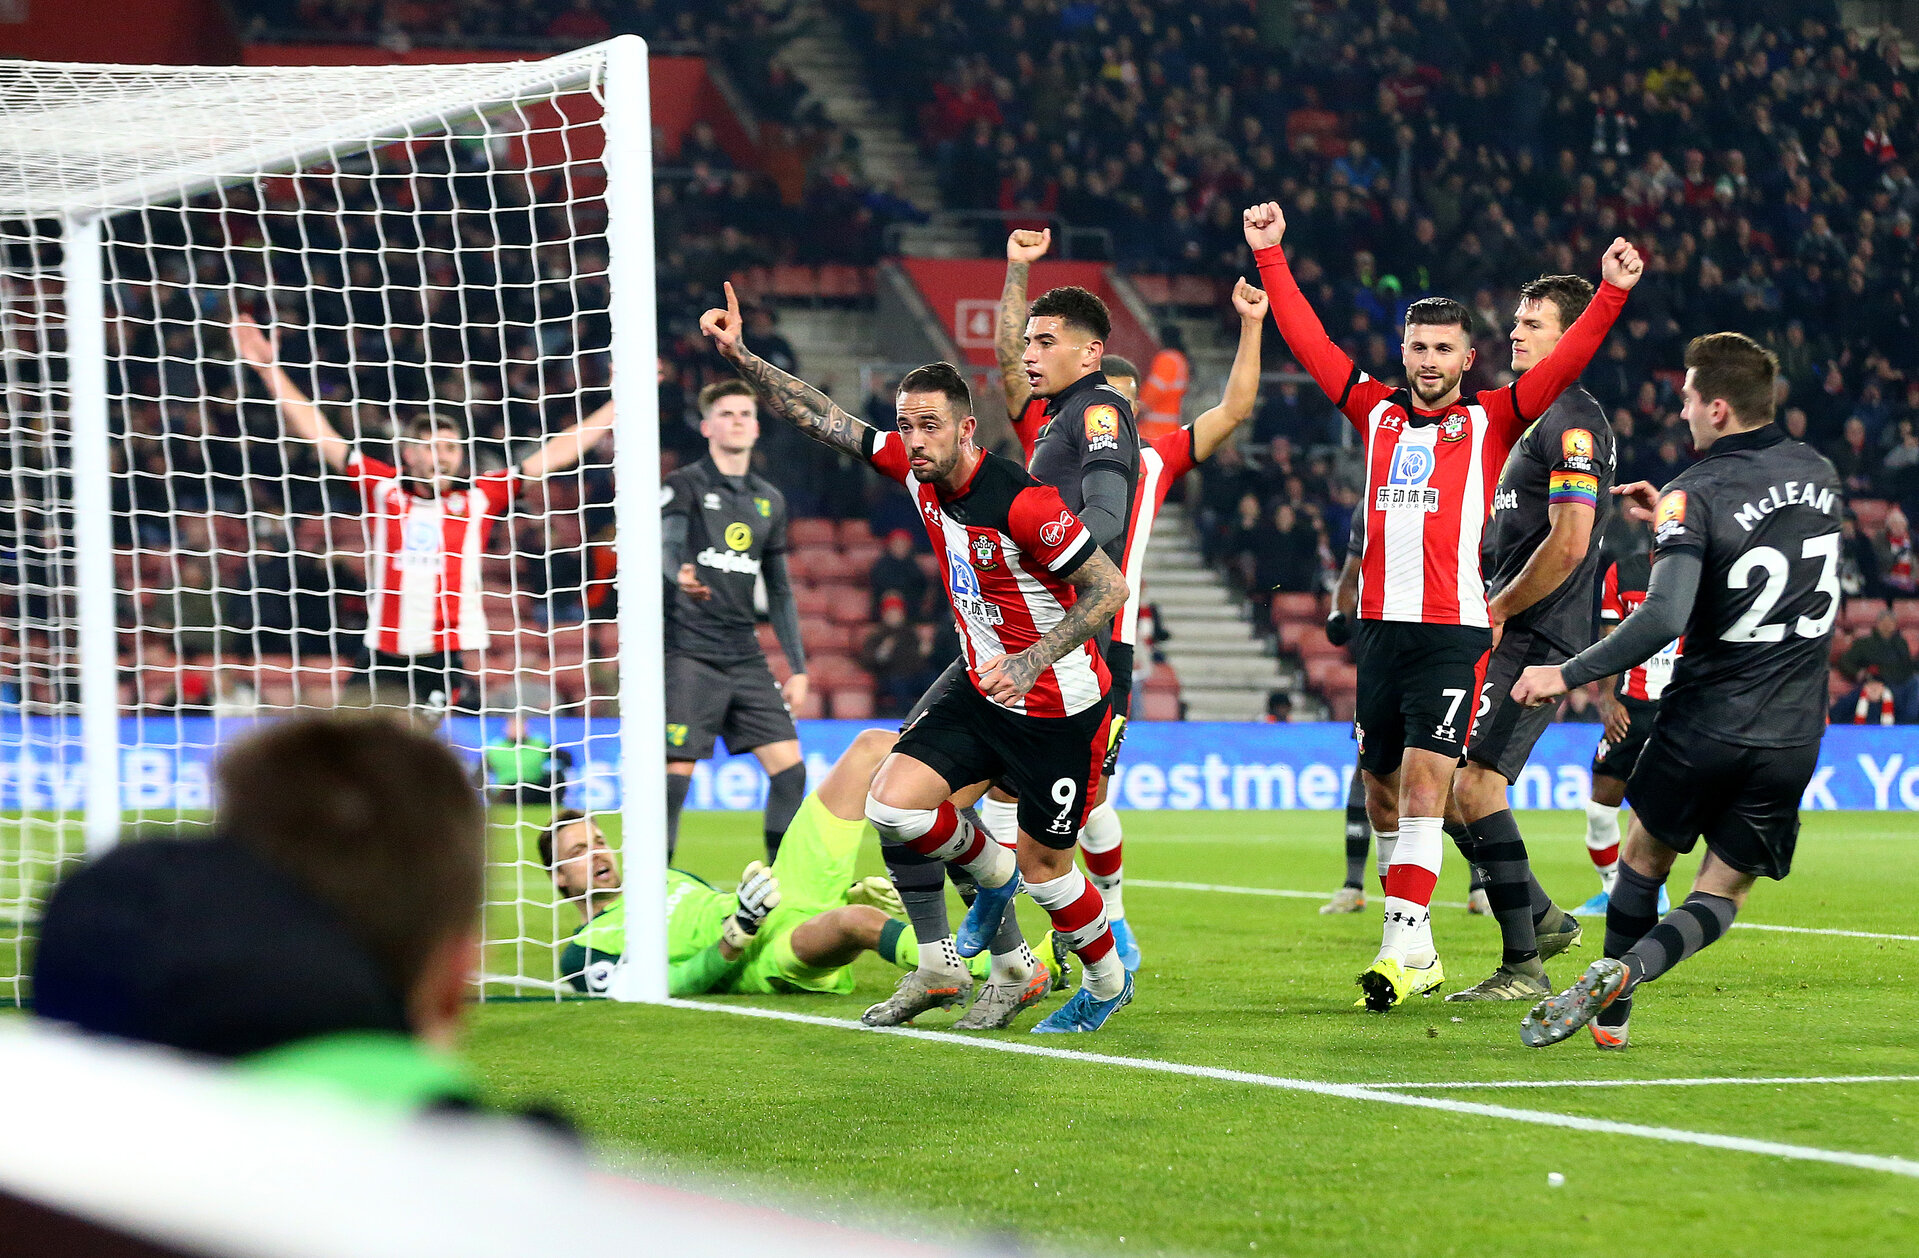 SOUTHAMPTON, ENGLAND - DECEMBER 04: Danny Ings of Southampton celebrates after scoring to put his team 1-0 up during the Premier League match between Southampton FC and Norwich City at St Mary's Stadium on December 04, 2019 in Southampton, United Kingdom. (Photo by Matt Watson/Southampton FC via Getty Images)